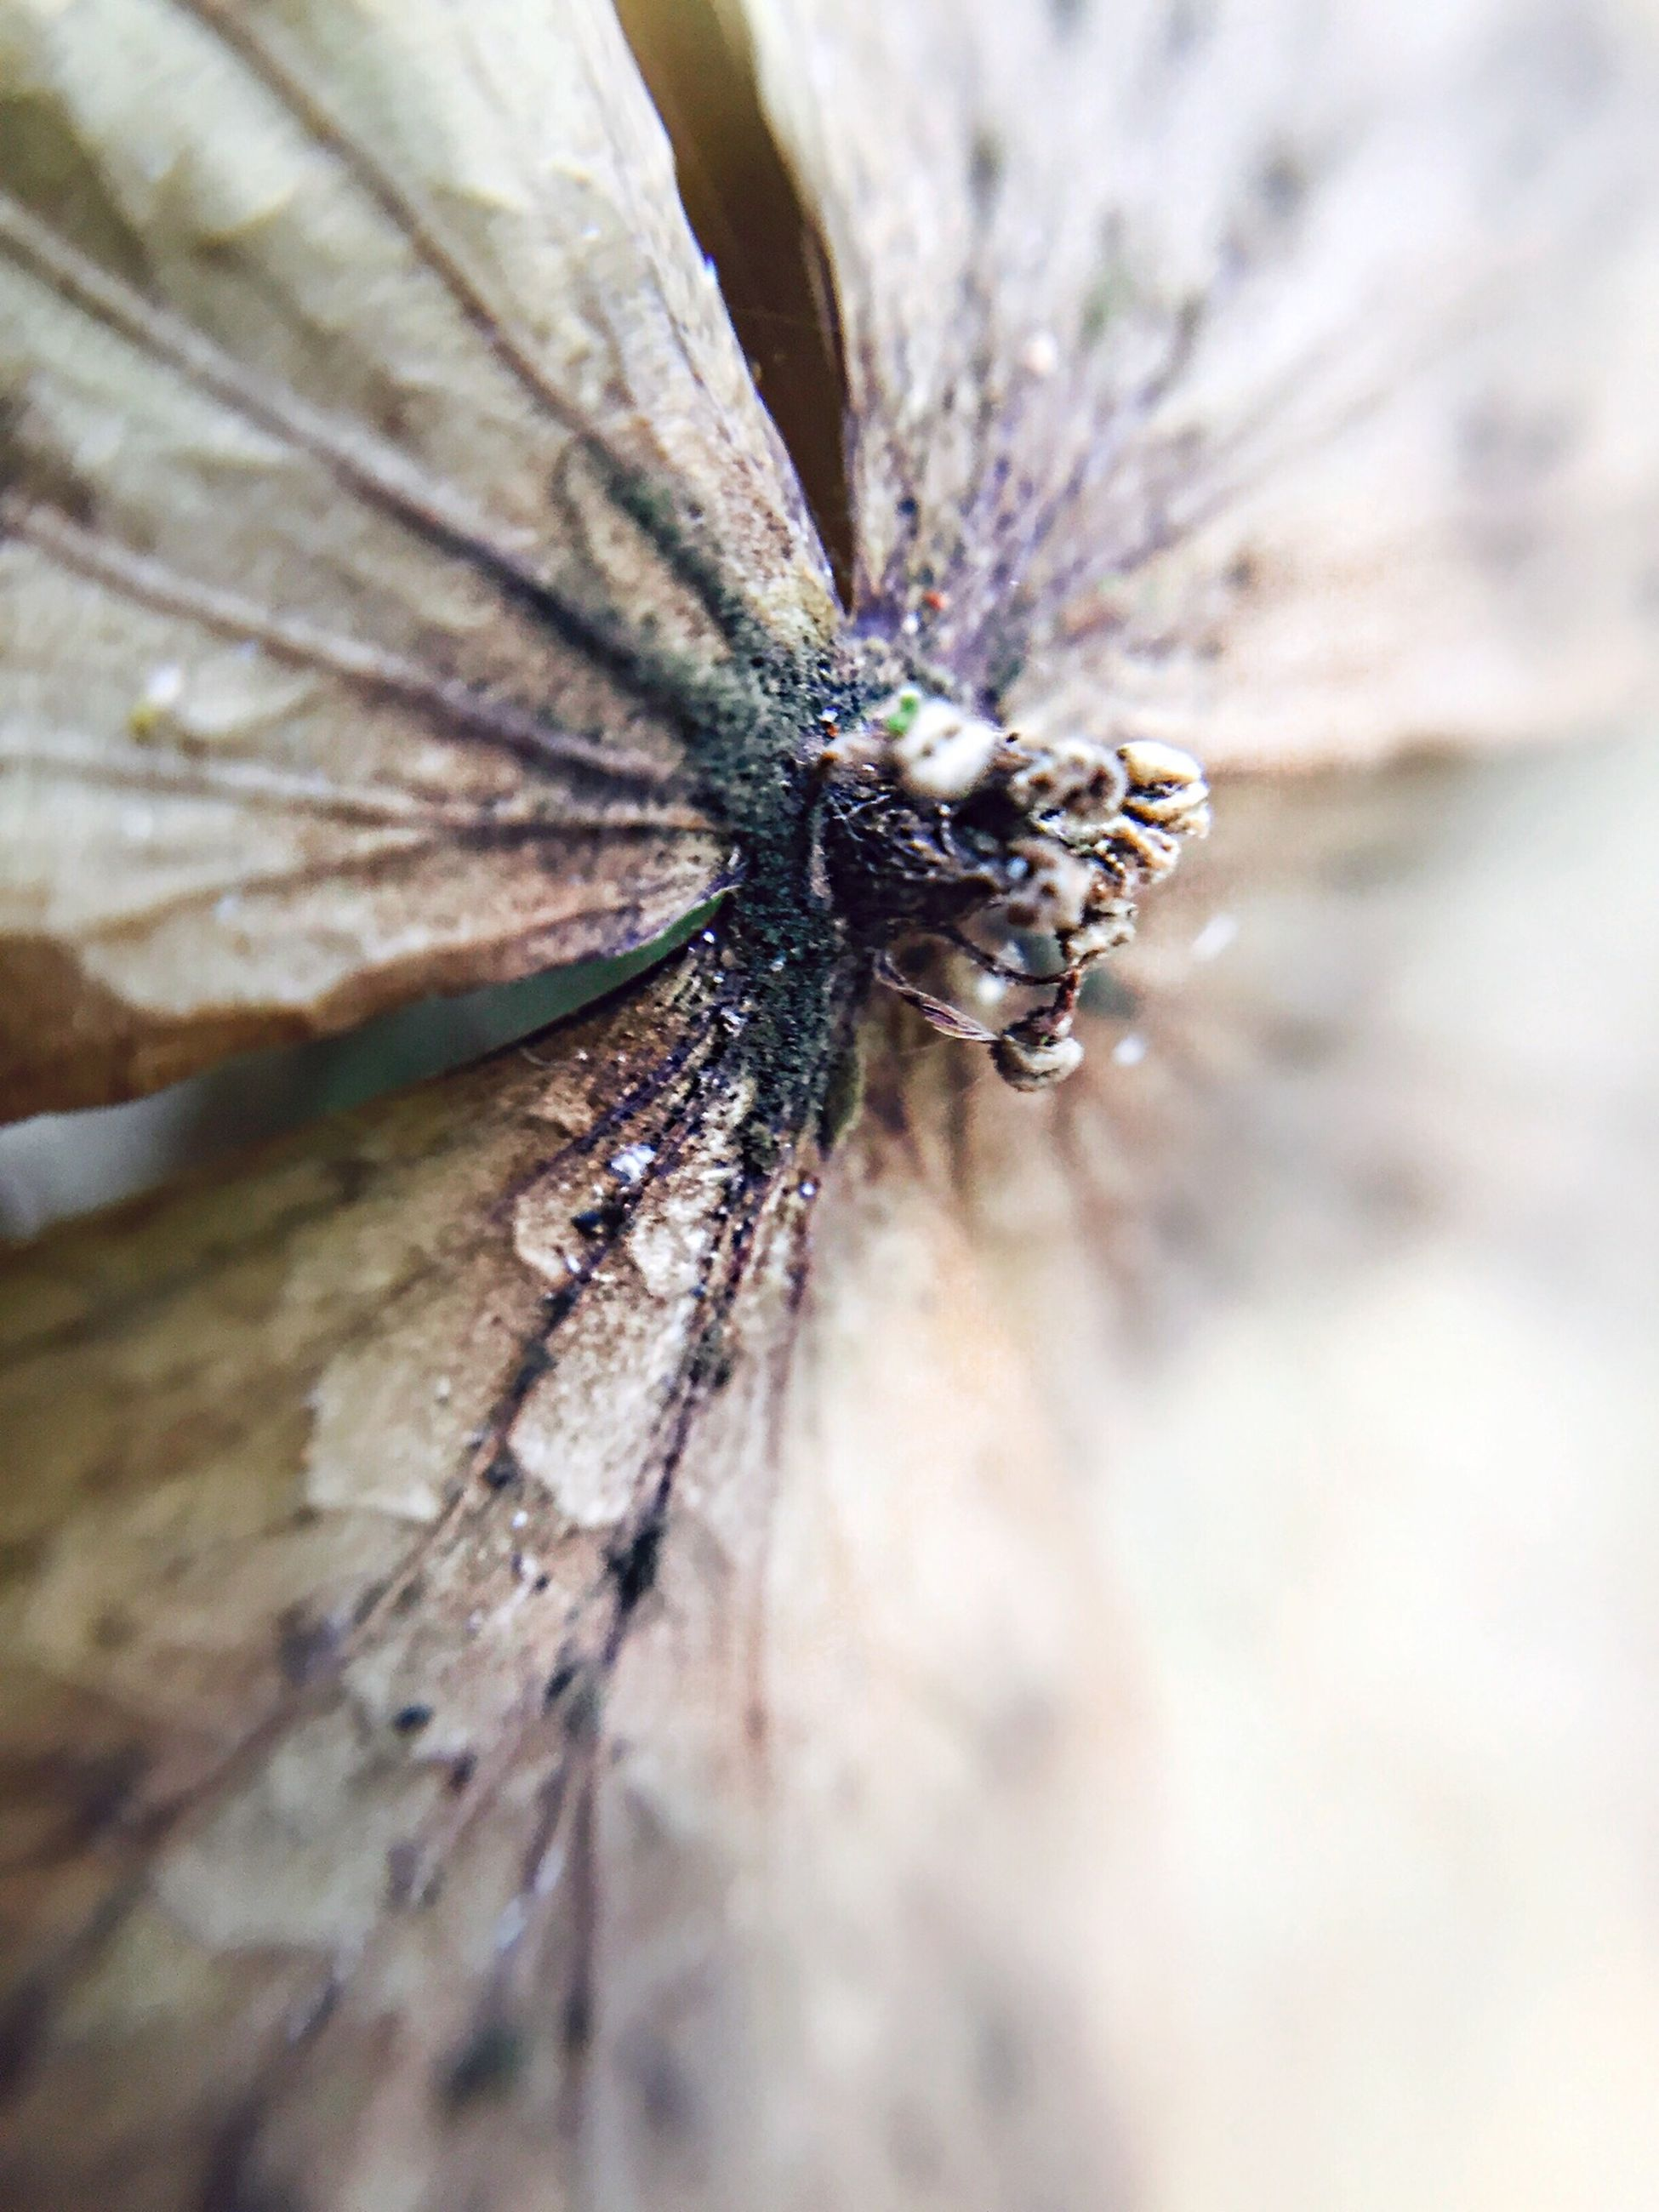 insect, one animal, animal themes, animals in the wild, wildlife, close-up, selective focus, nature, focus on foreground, animal wing, full length, macro, outdoors, wood - material, arthropod, day, fragility, animal antenna, no people, beauty in nature